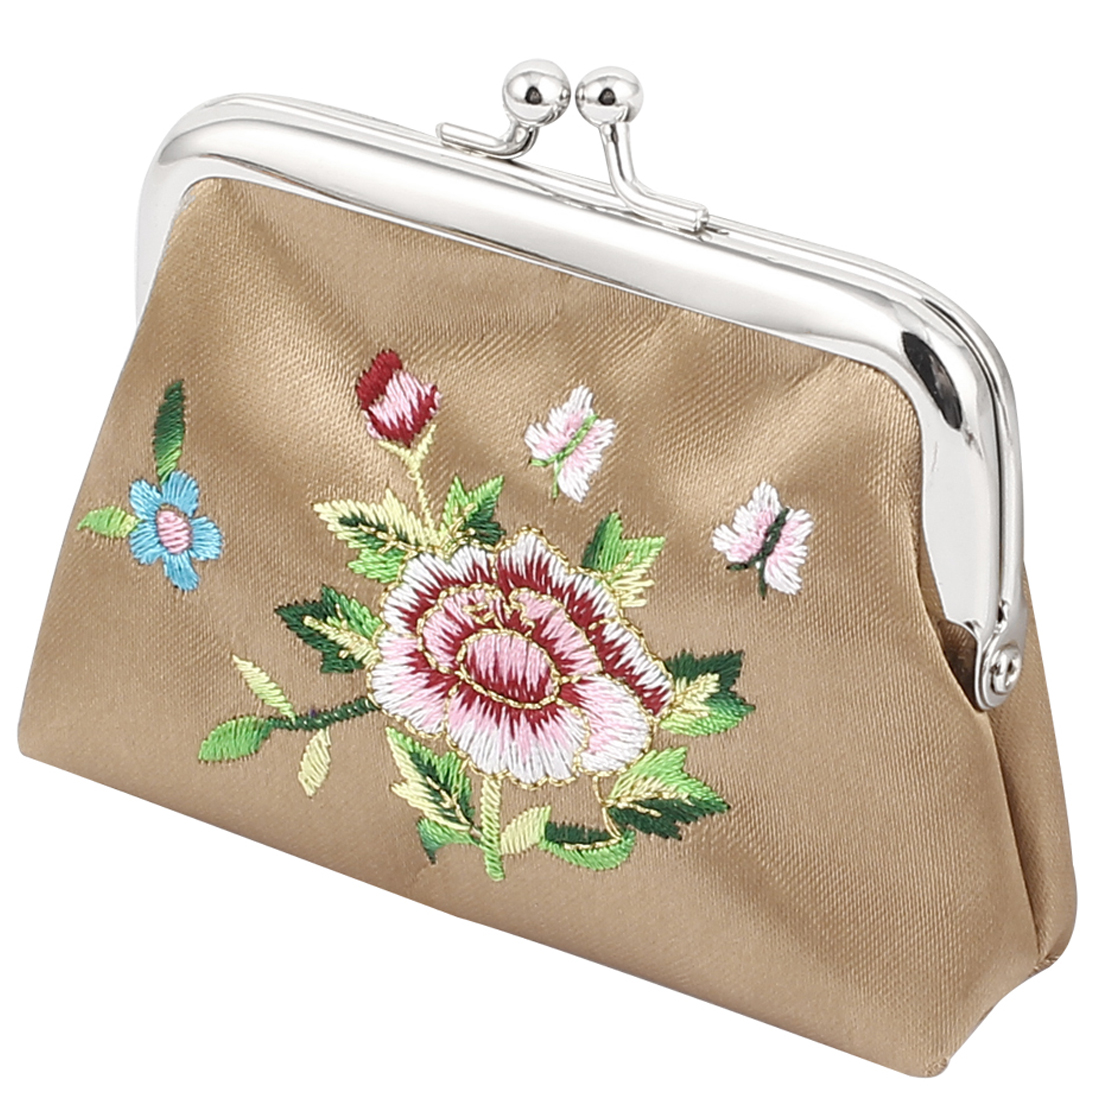 Lady Flower Embroidery Kiss Lock Closure Bag Coin Change Purse Money Holder Wallet Gray